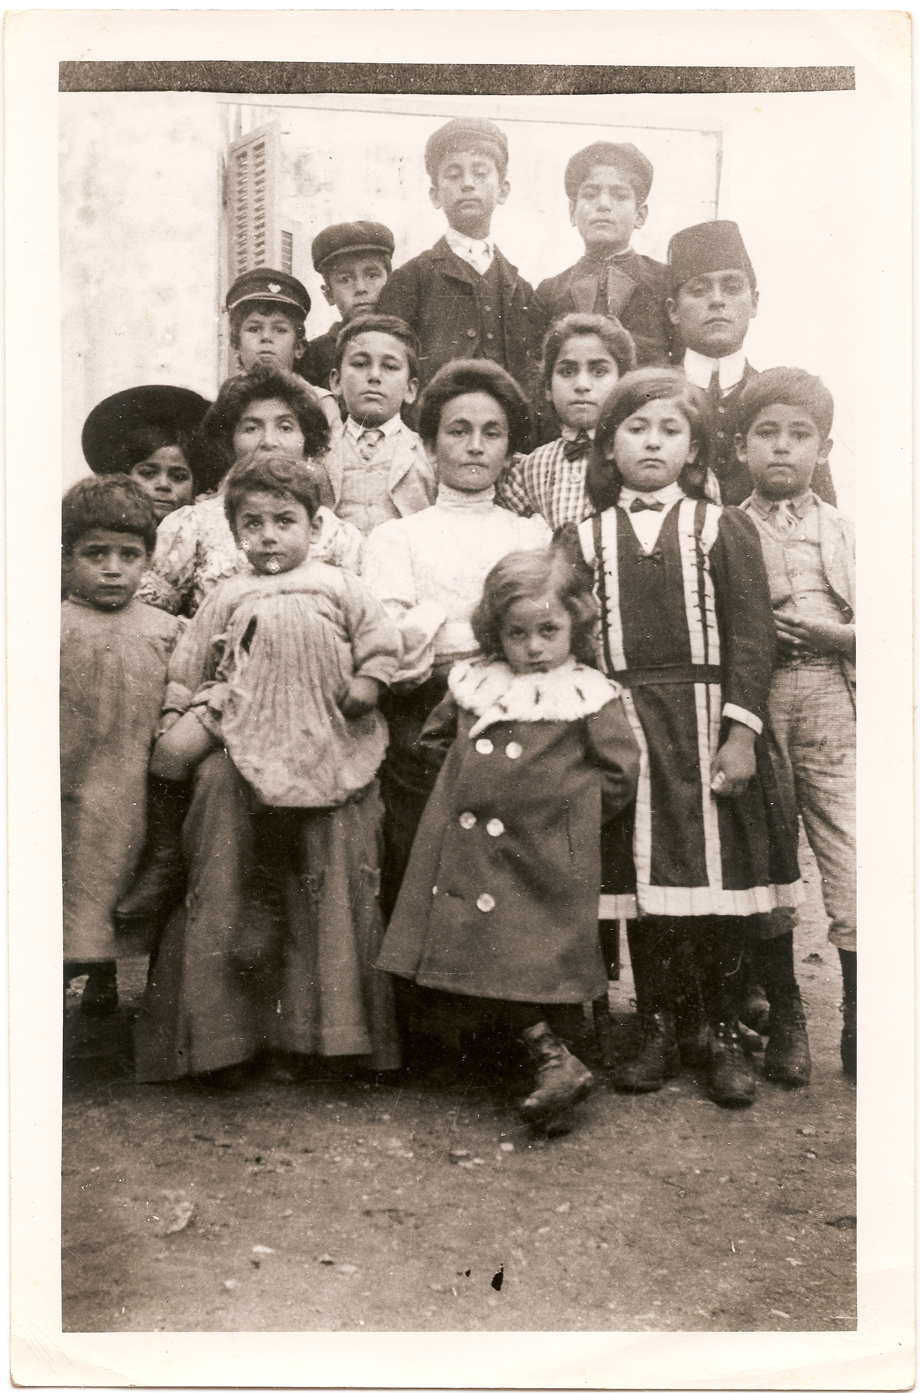 The families of Dikran and Avedis Kasardjian